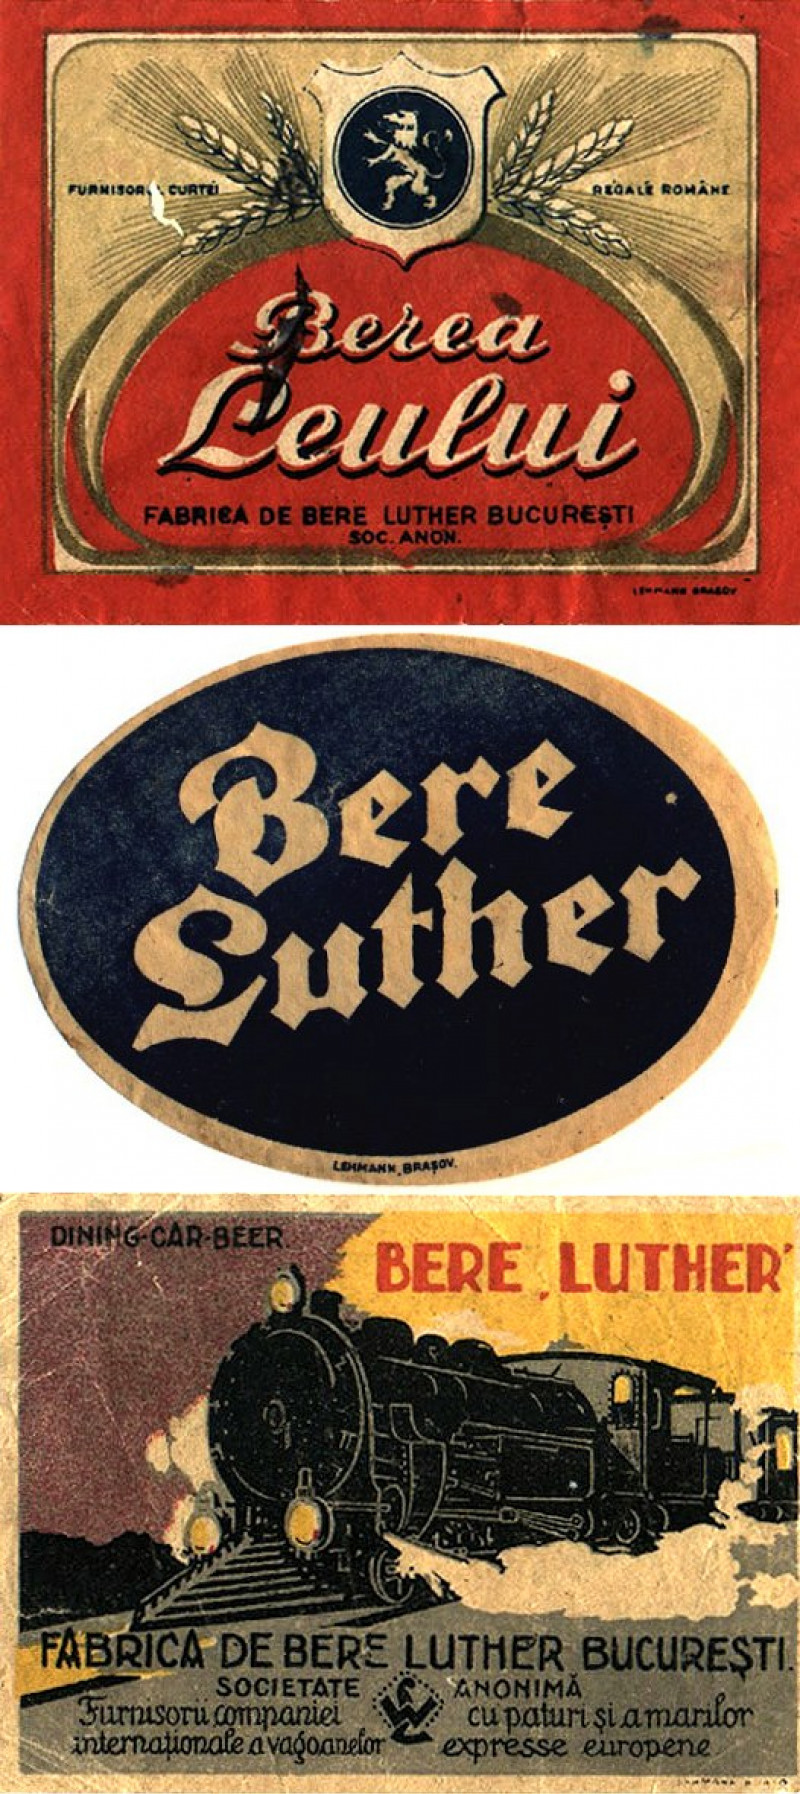 Fabrica de bere Luther | wikipedia.org